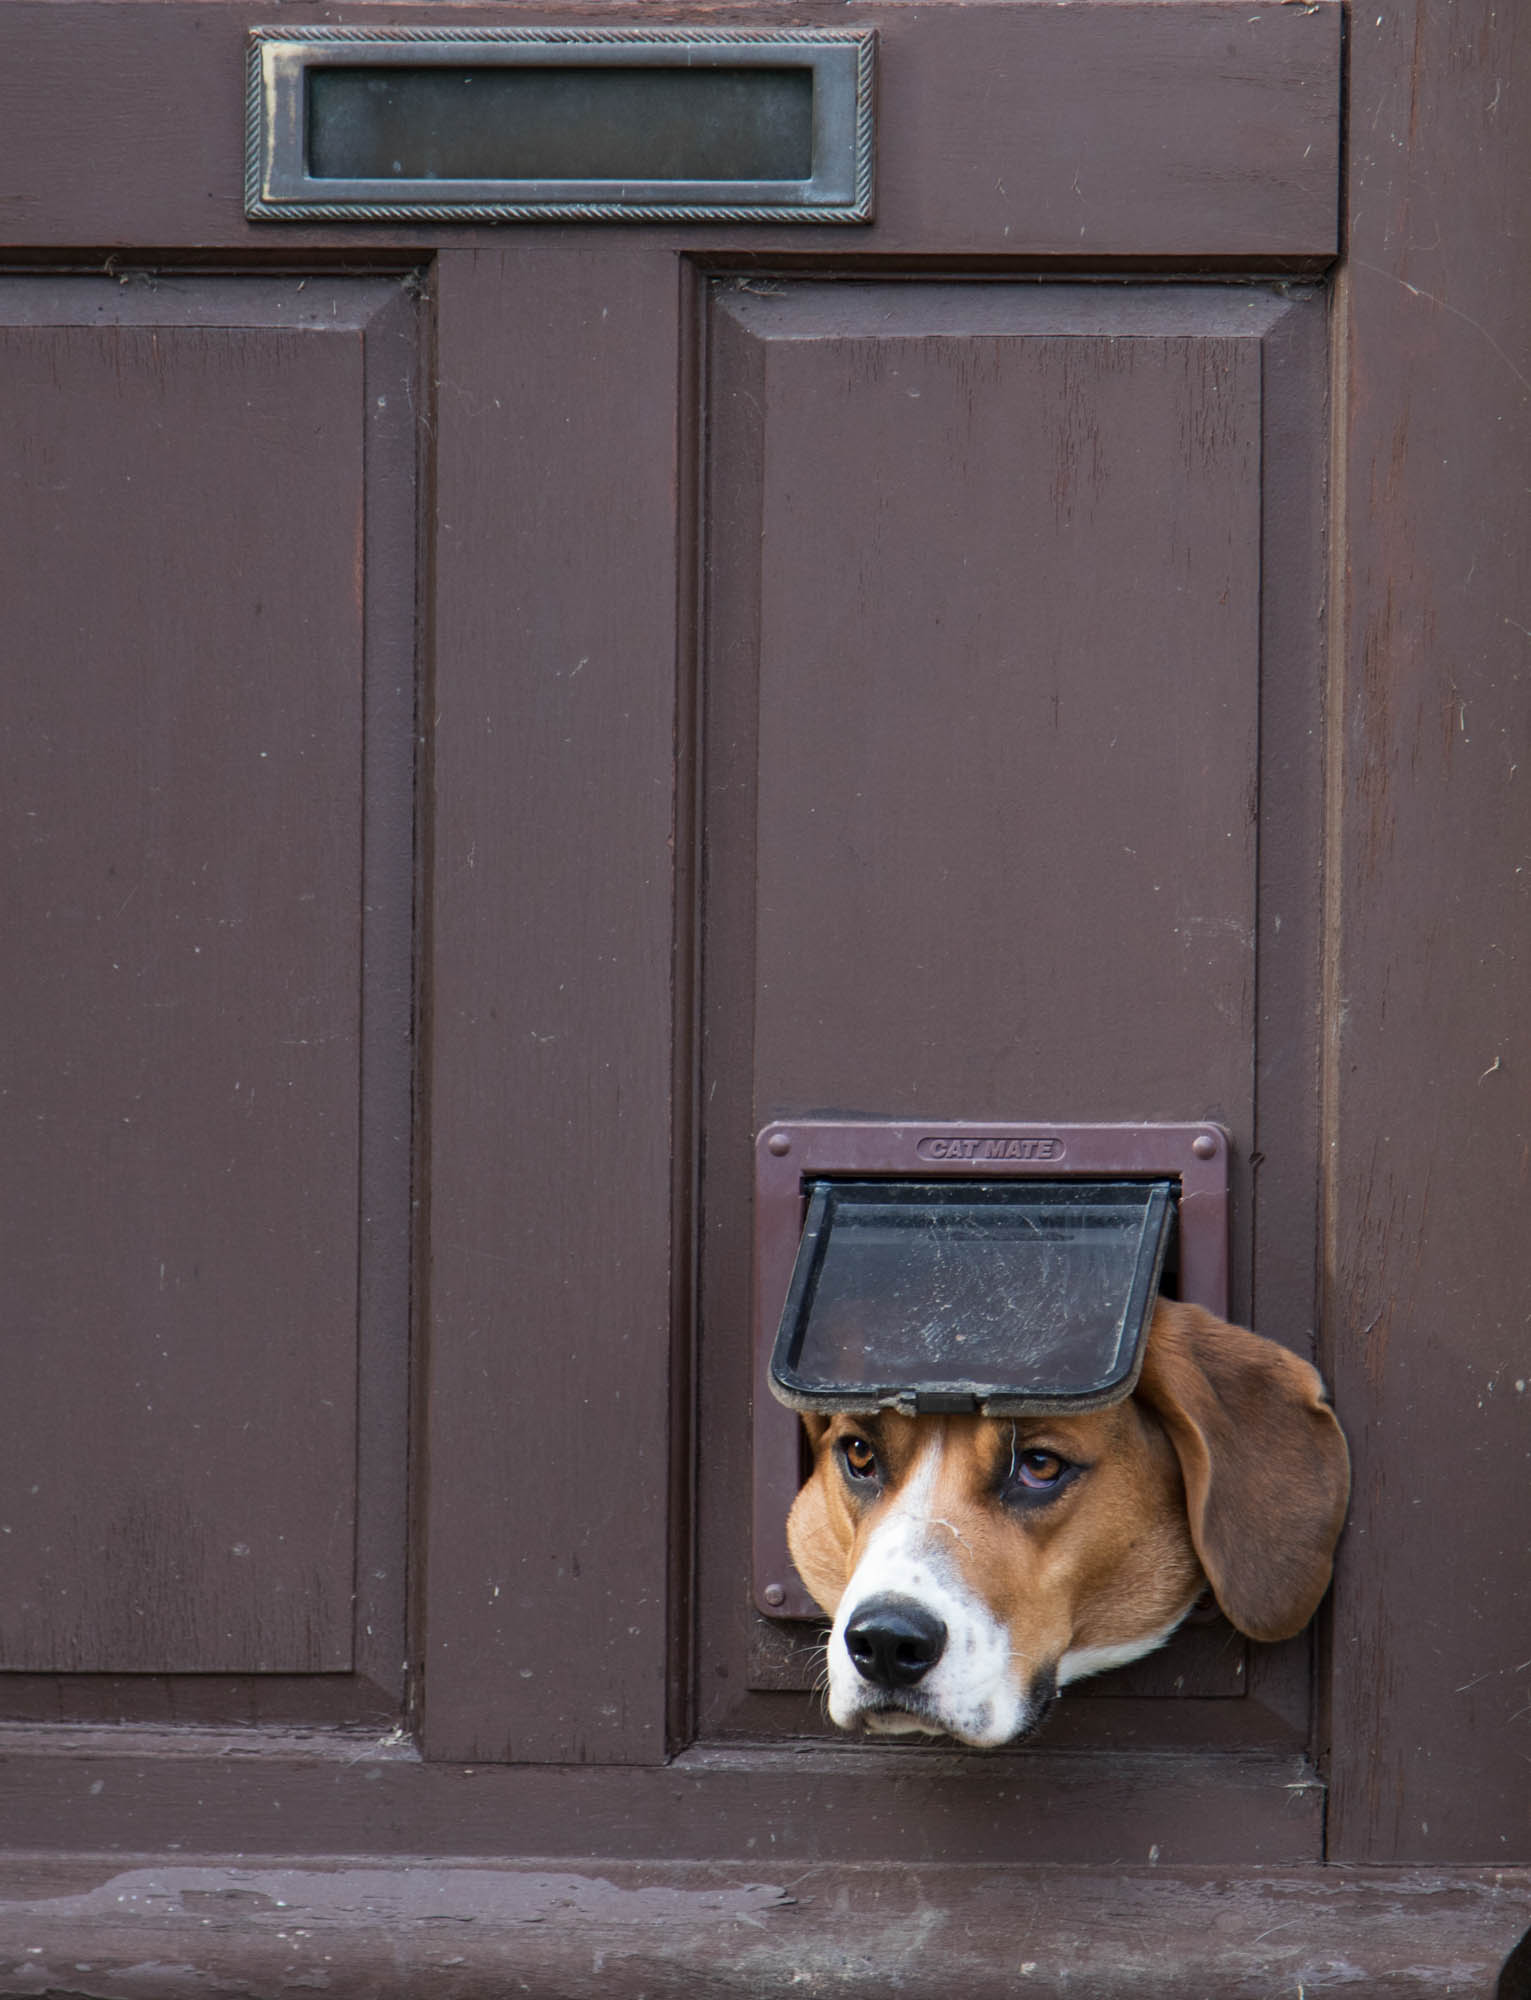 Dog looking into street through a catflap